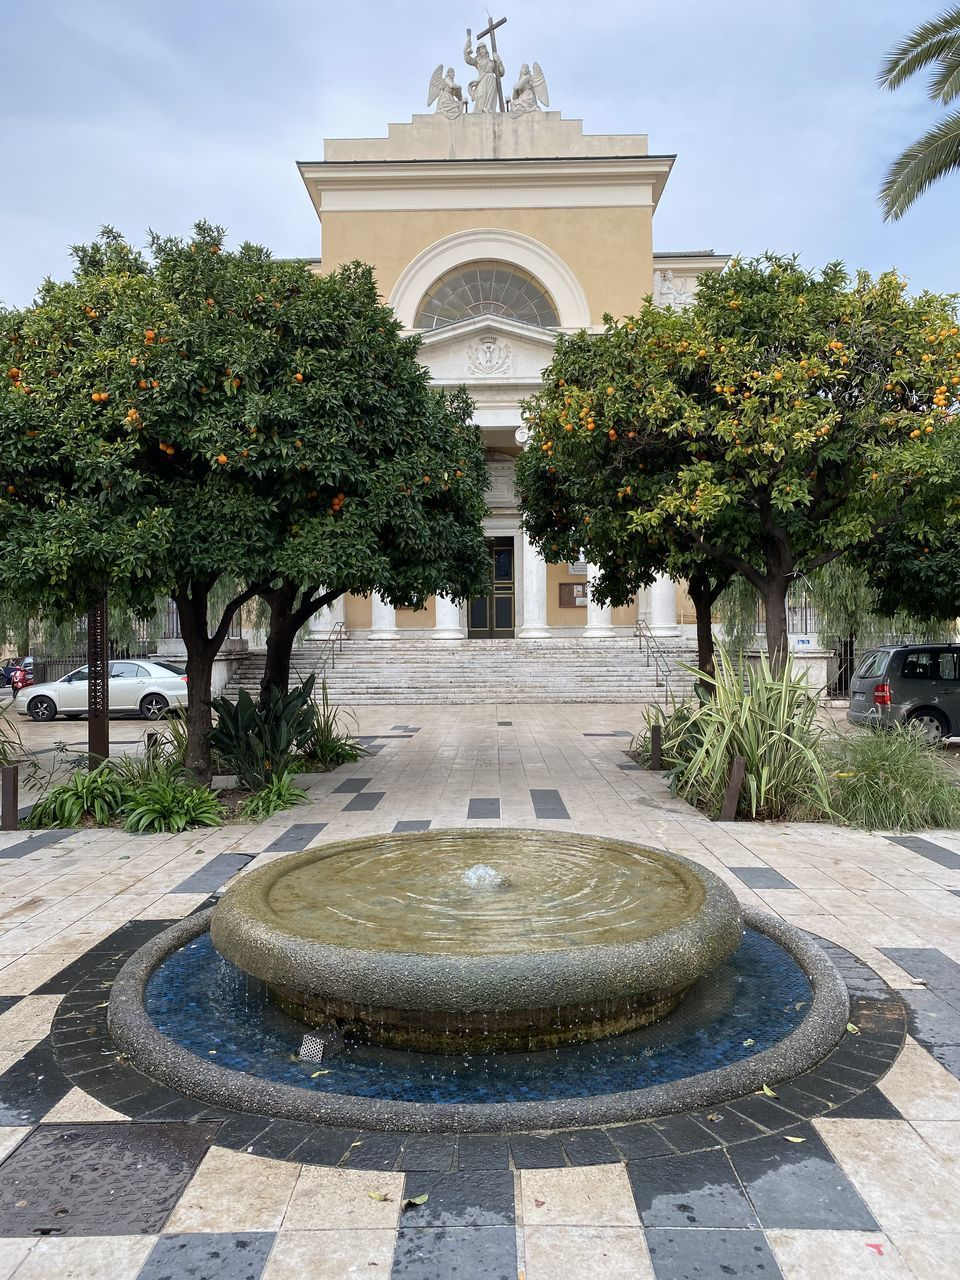 architecture, tree, plant, built structure, nature, building exterior, arch, fountain, water, outdoors, day, no people, garden, history, front or back yard, the past, sky, city, growth, architectural column, courtyard